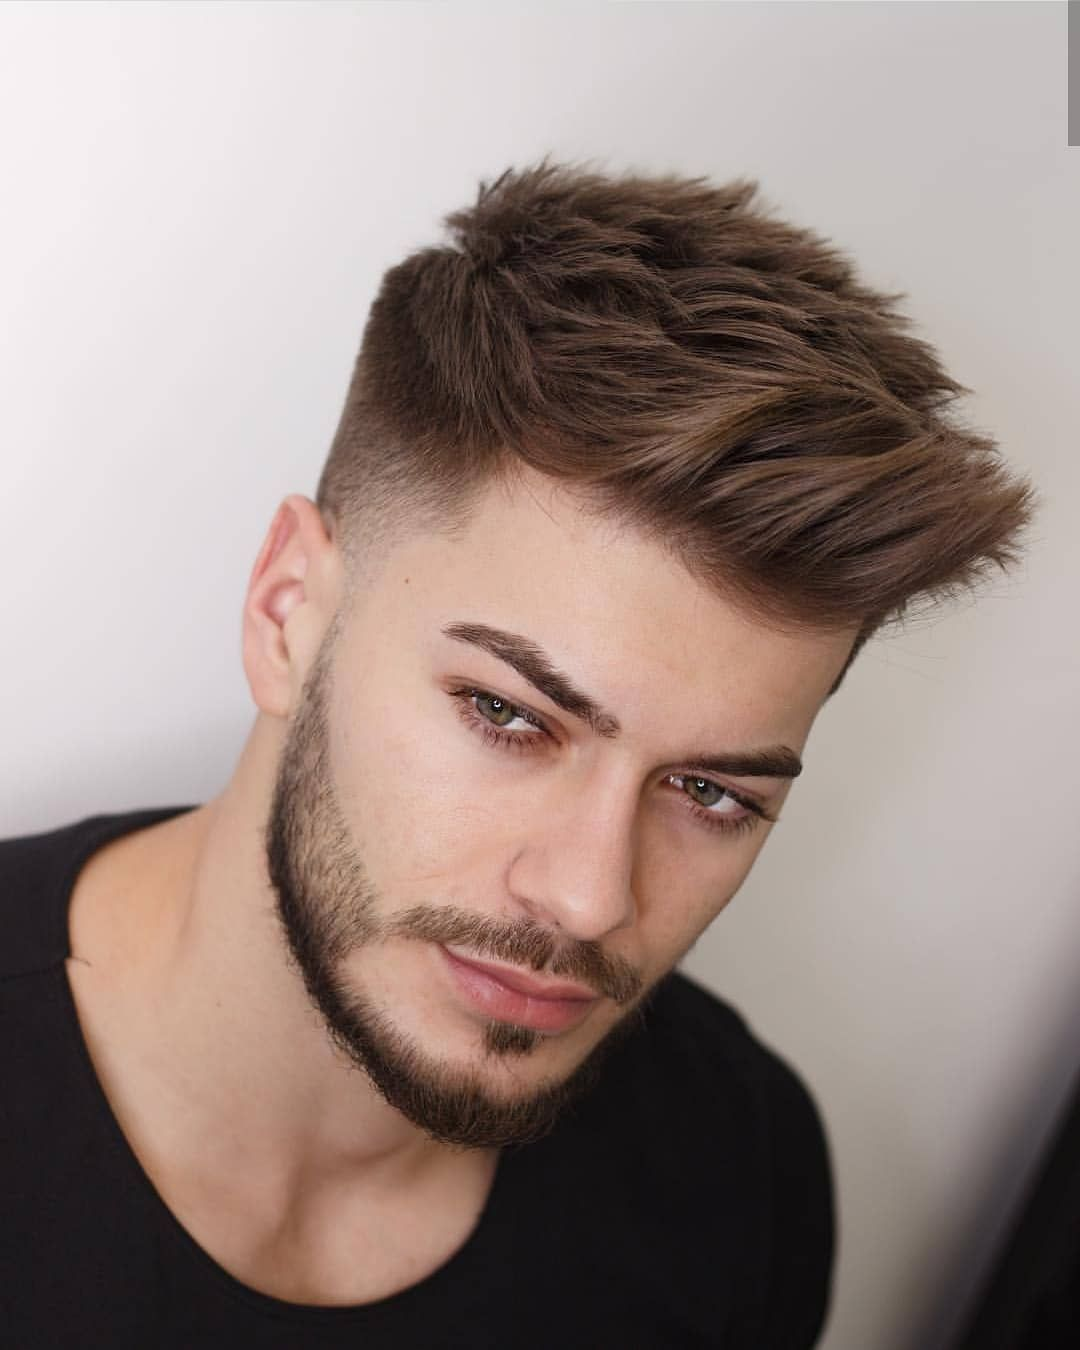 Horatiuthebarber Peinadoshombre Men Haircut Styles Gents Hair Style Men Hair Color